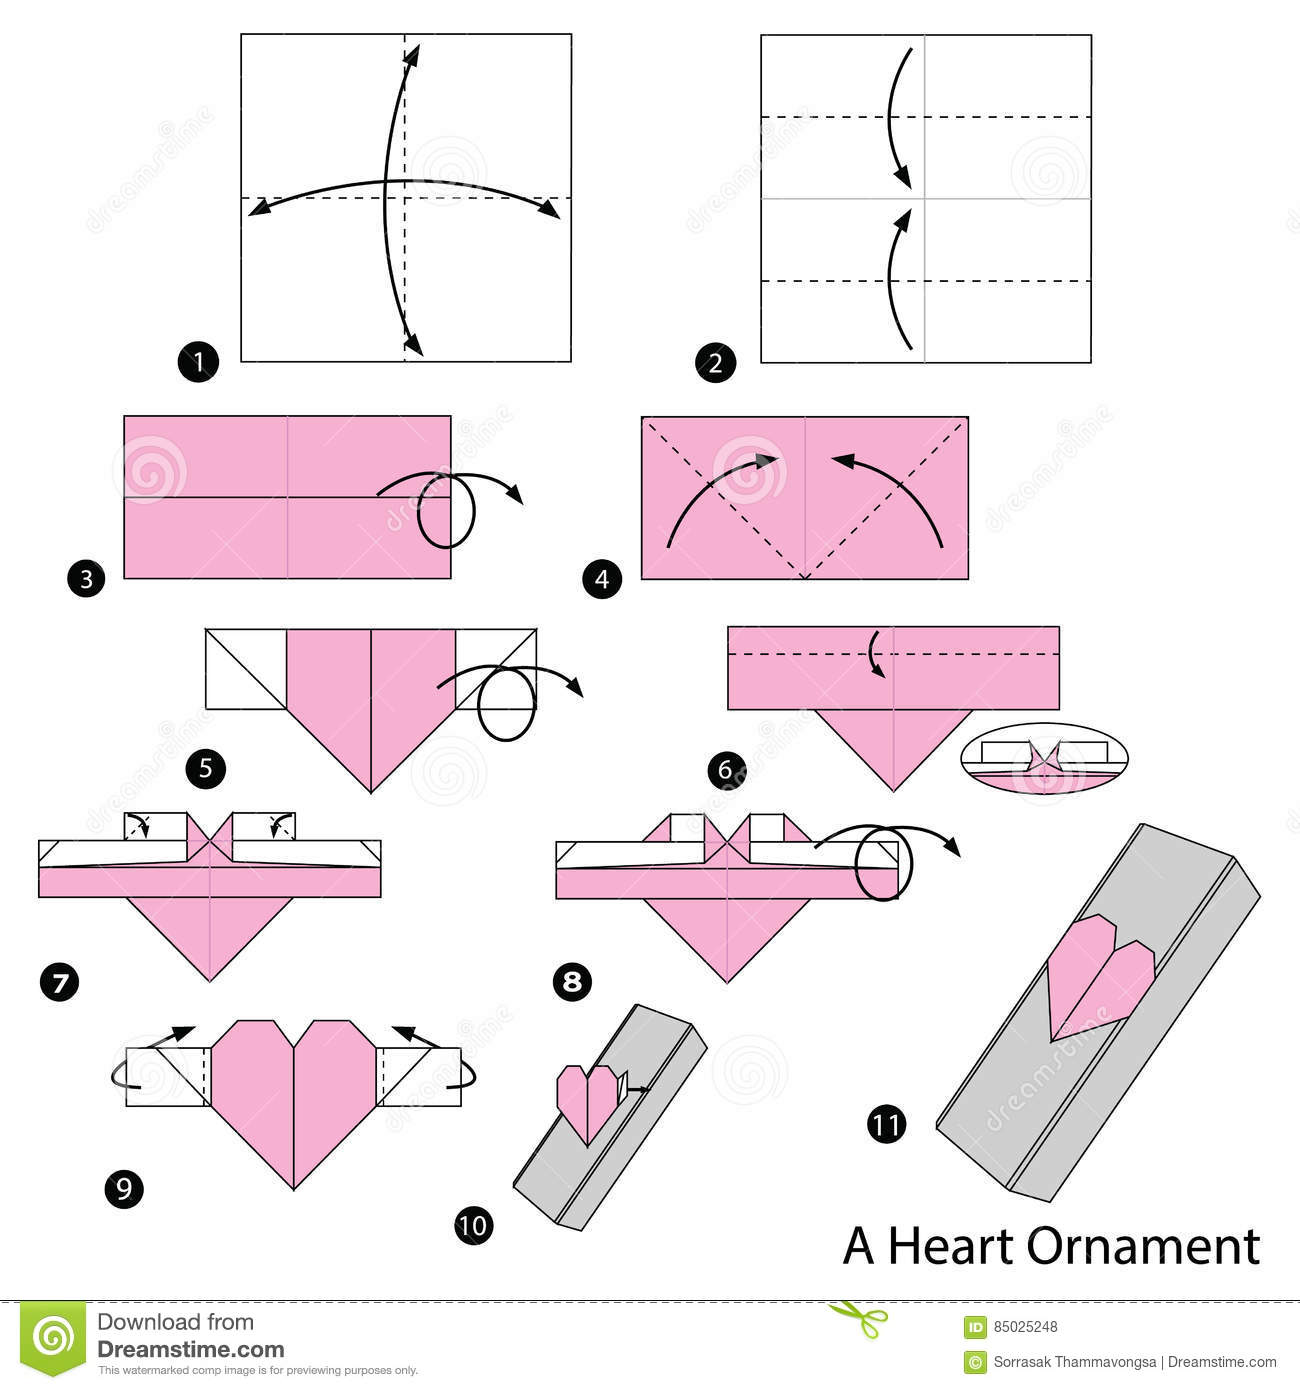 Step By Step Instructions How To Make Origami A Heart Ornament